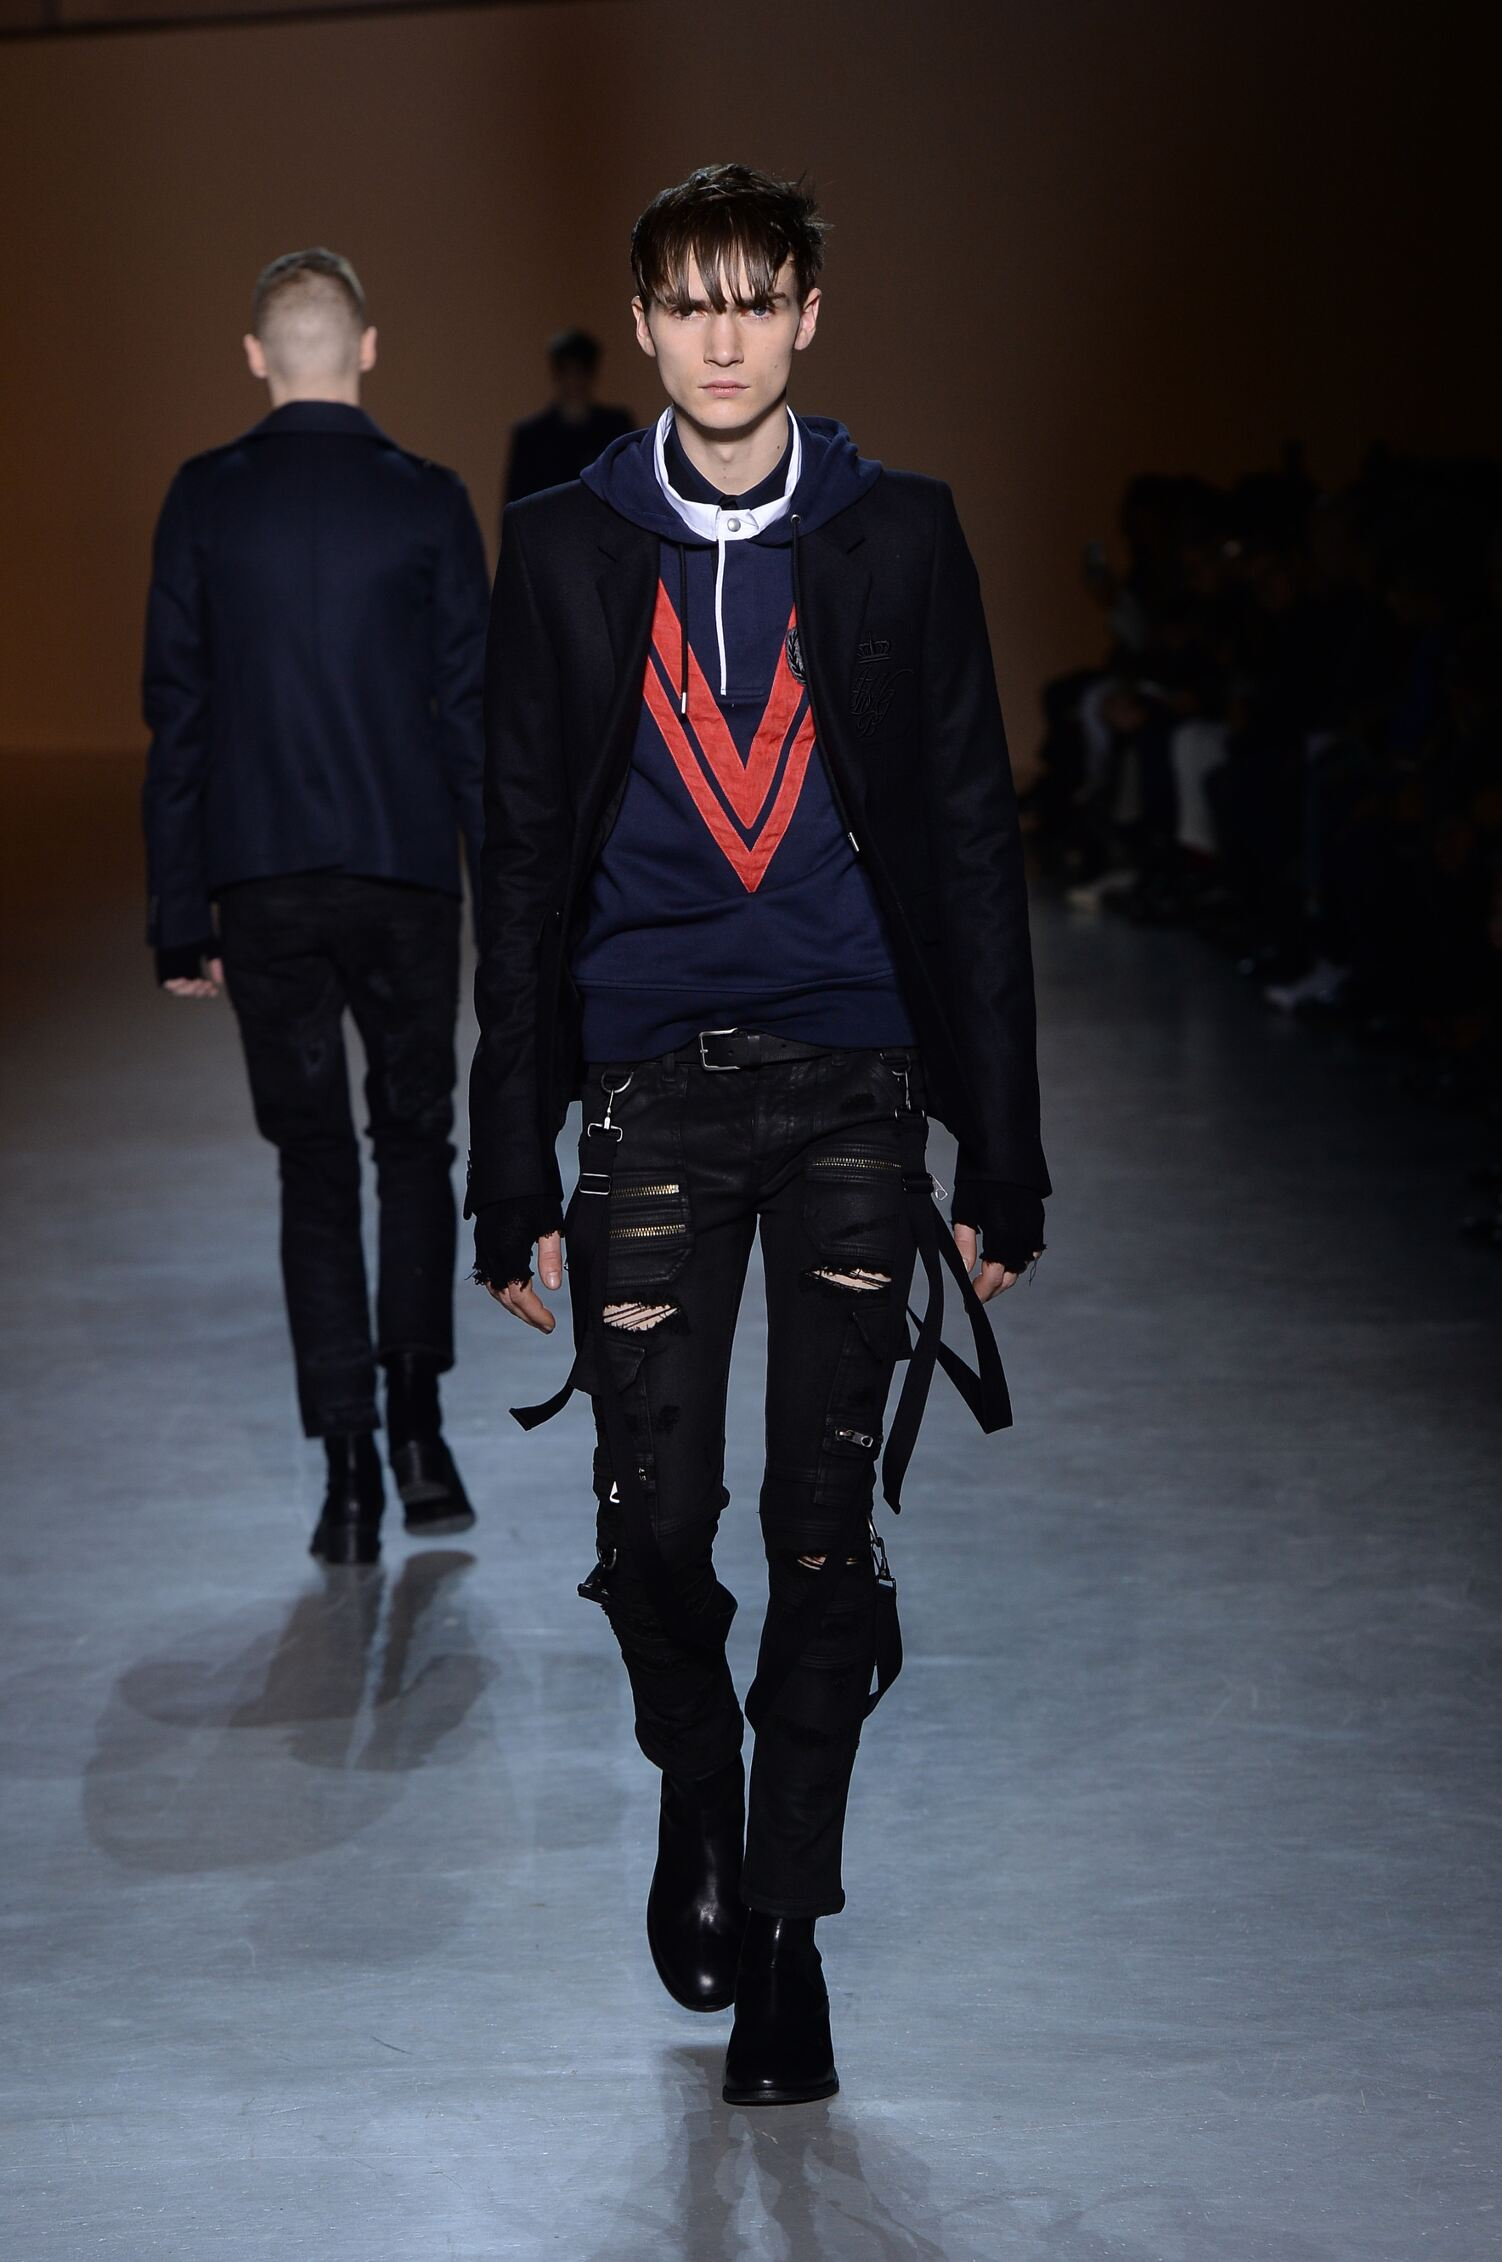 Winter 2015 Fashion Show Diesel Black Gold